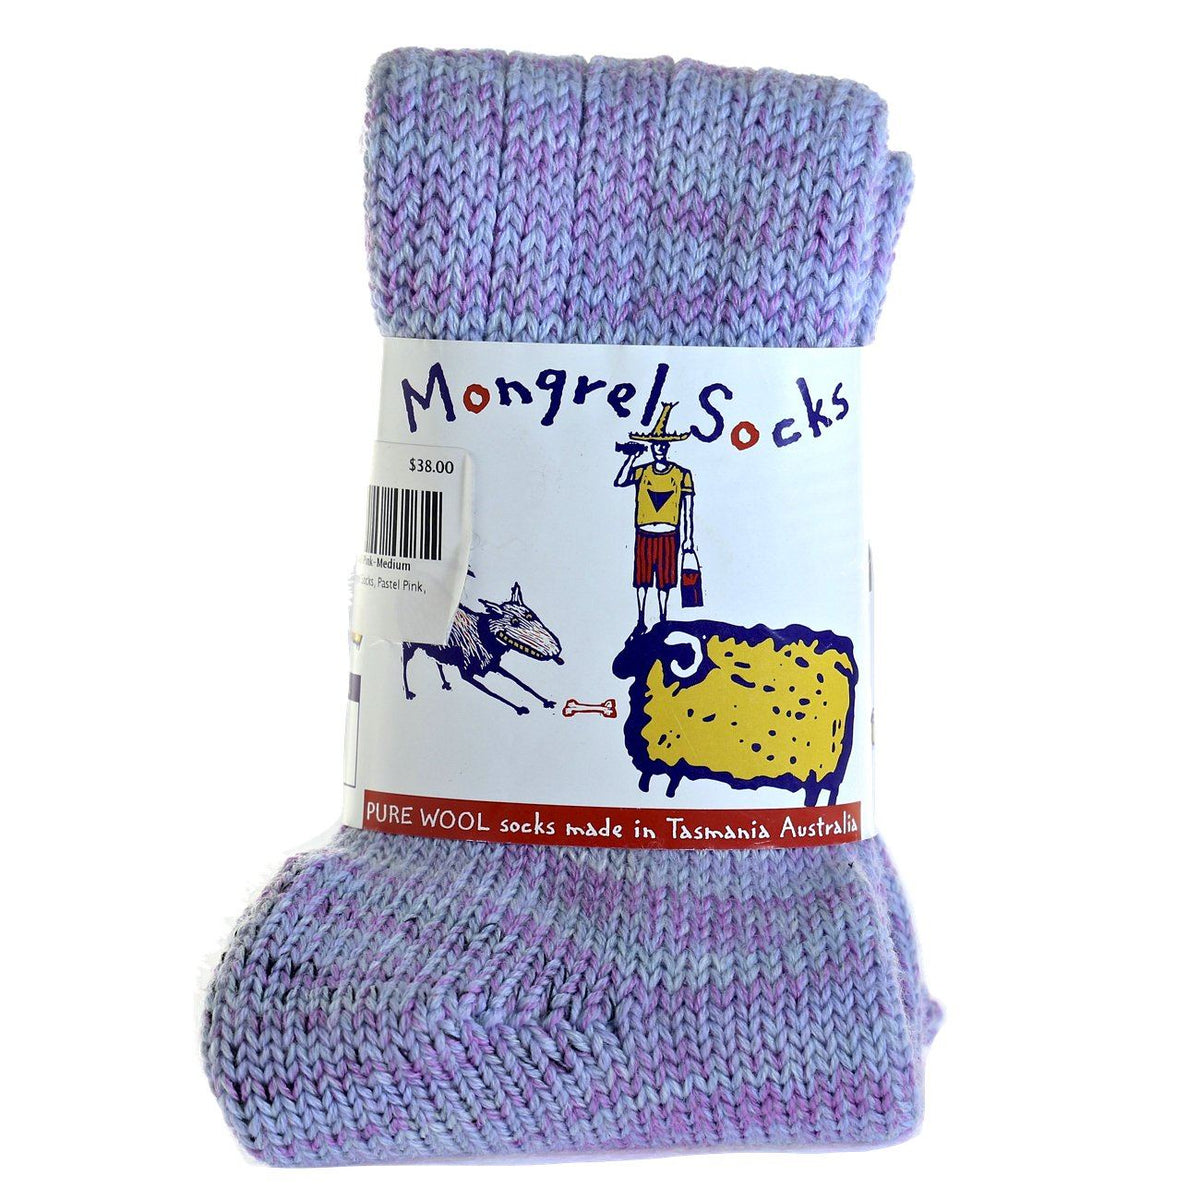 Pure Merino Wool Mongrel Socks, Pastel Pink